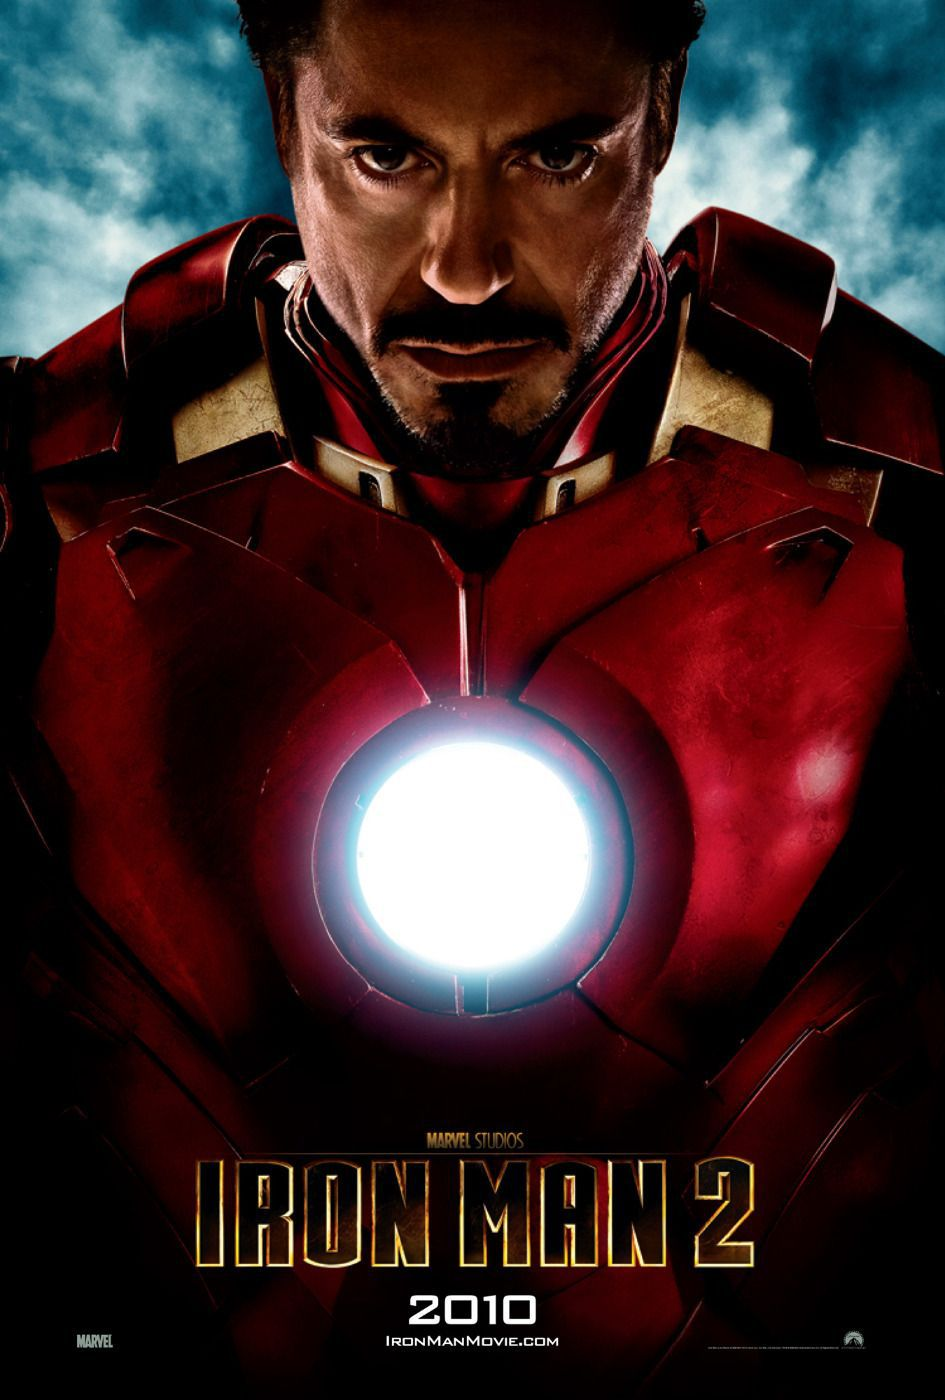 Iron Man 2 -  Robert Downey Jr.